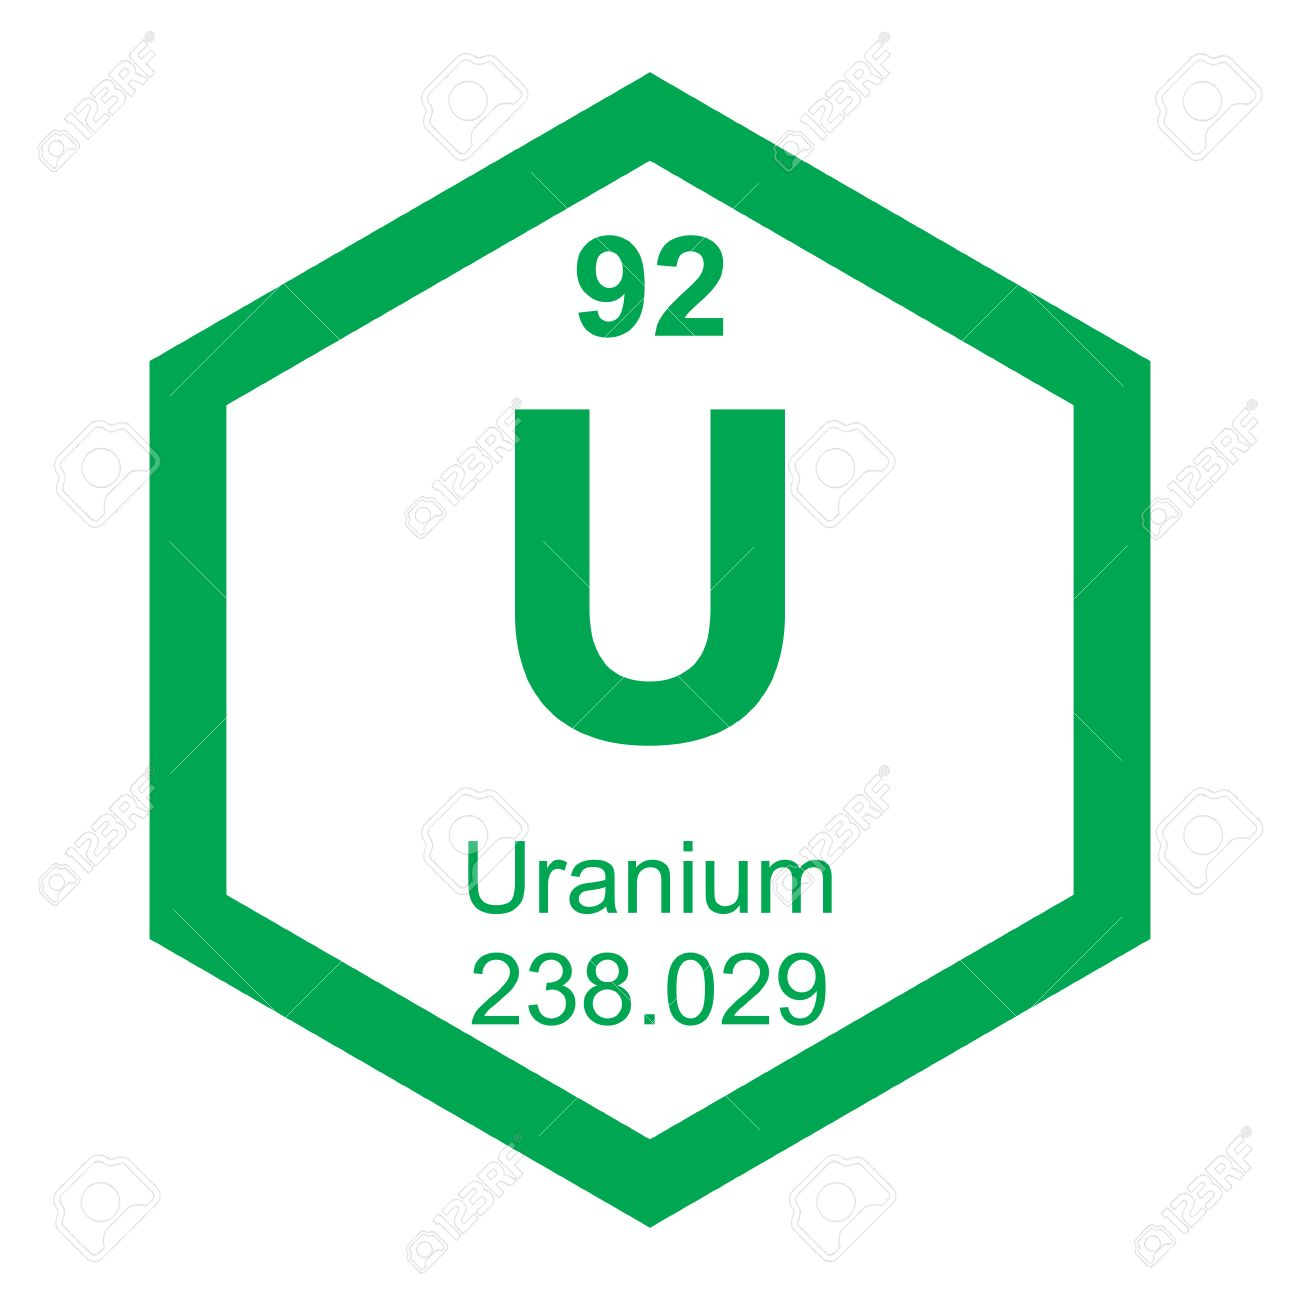 Periodic table uranium royalty free cliparts vectors and stock periodic table uranium stock vector 41243820 gamestrikefo Image collections